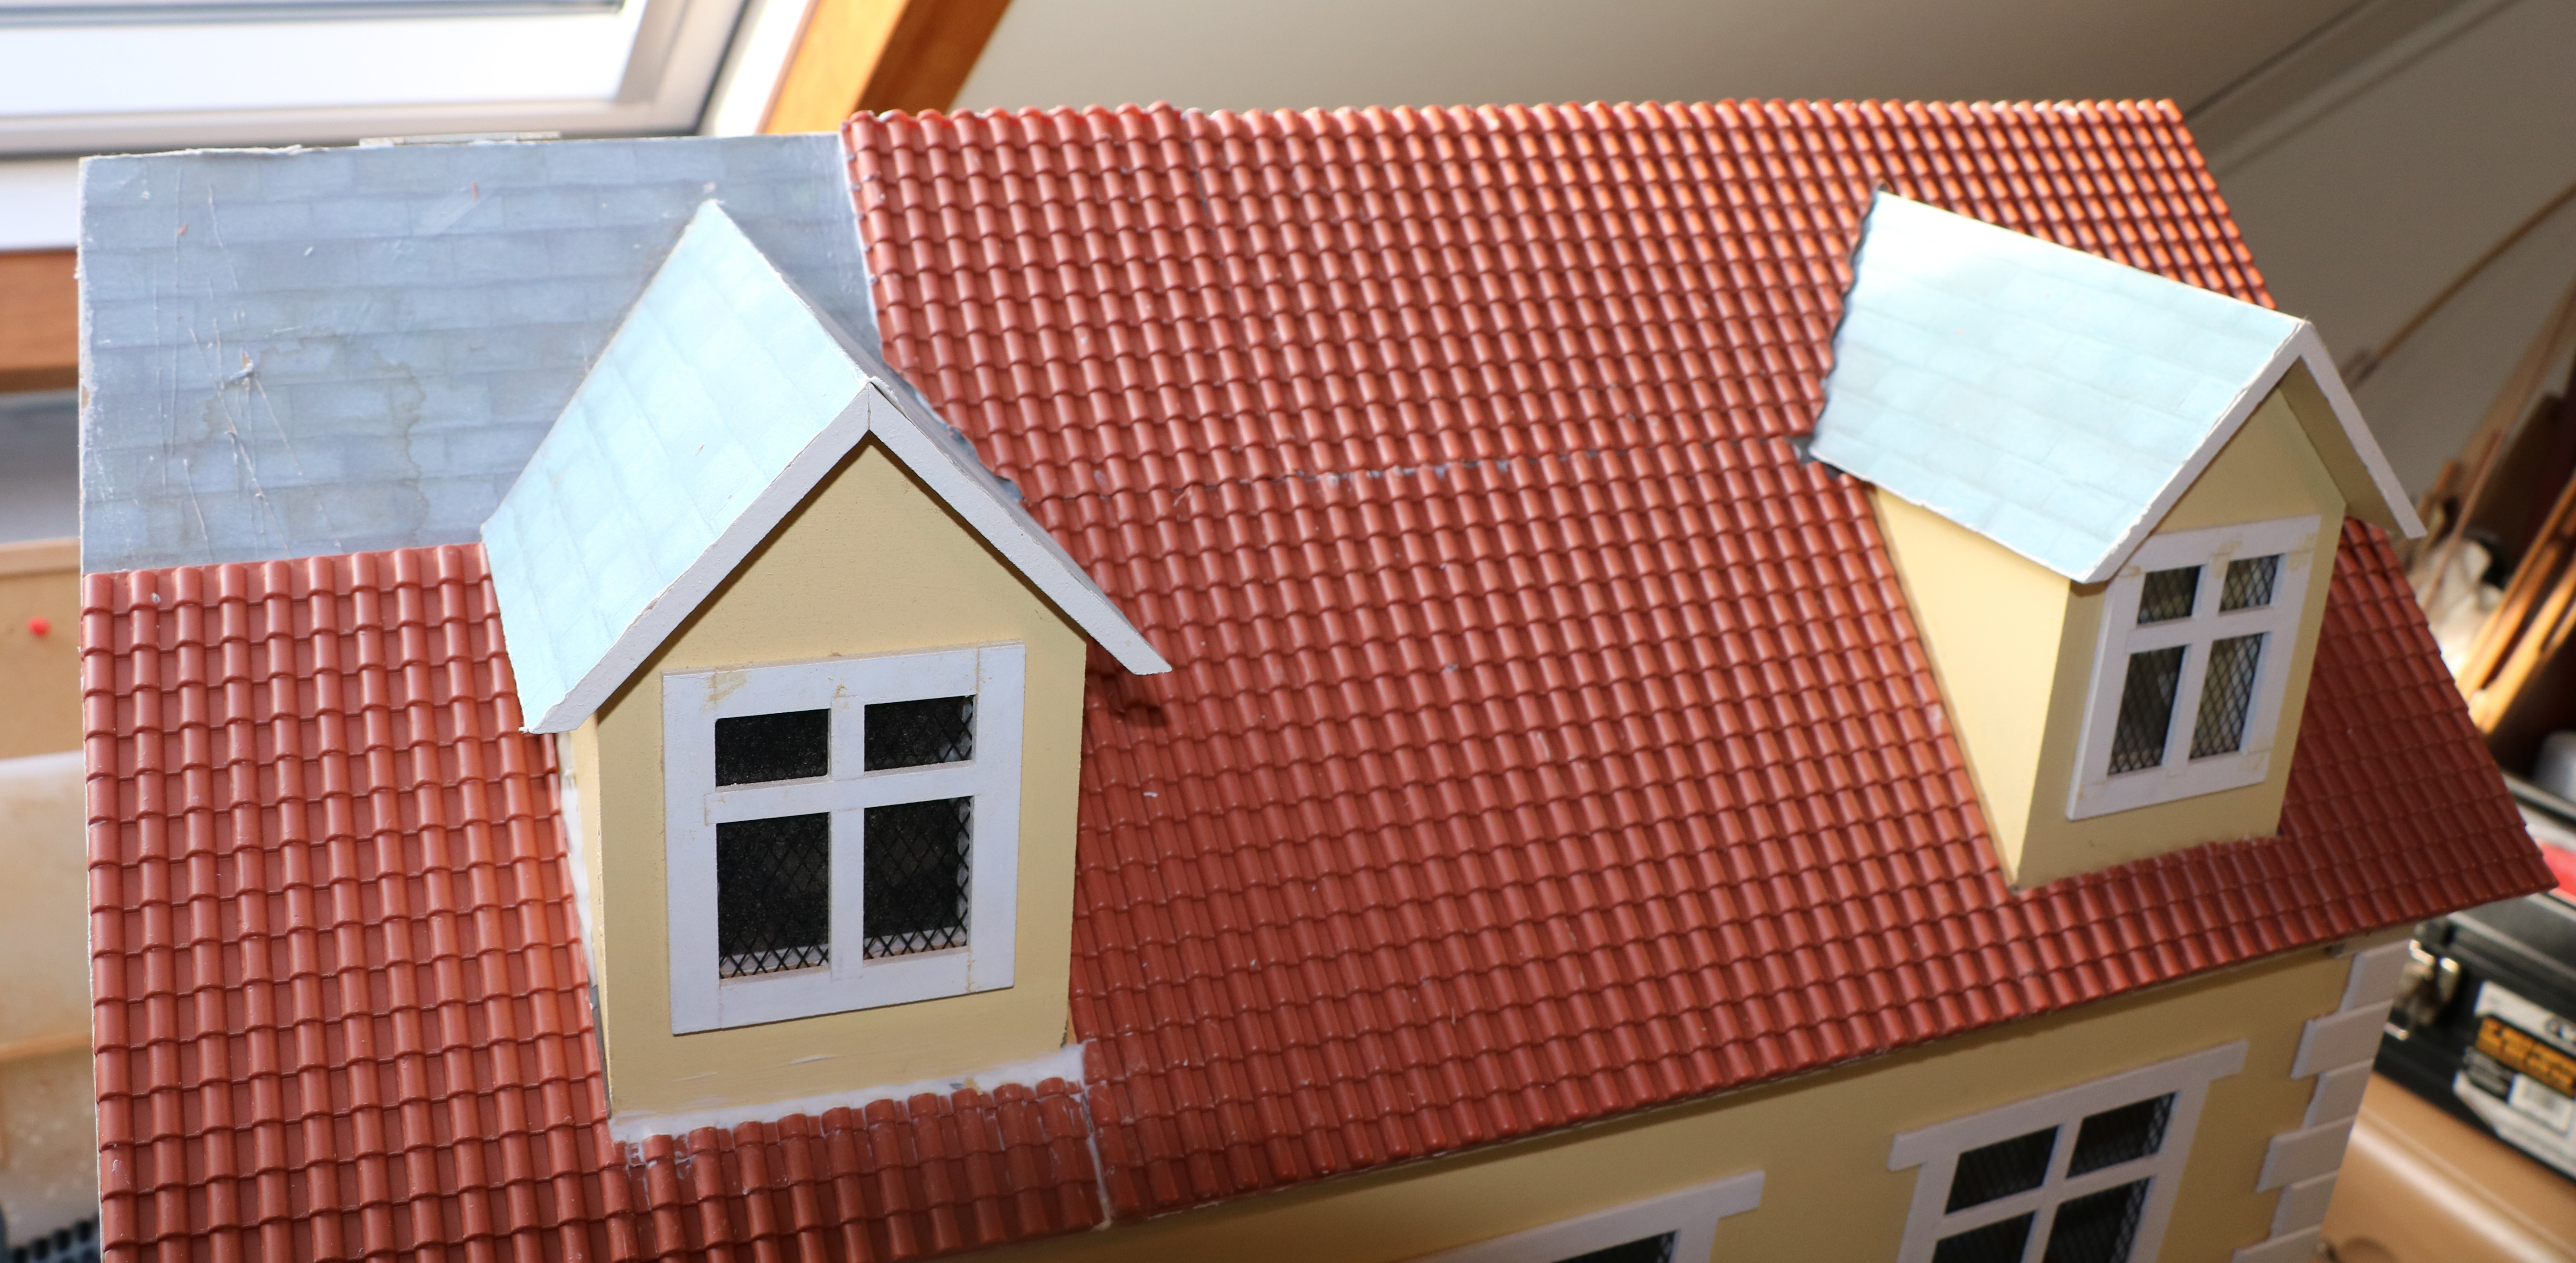 Roof of dolls house partly covered with sheets of tiling